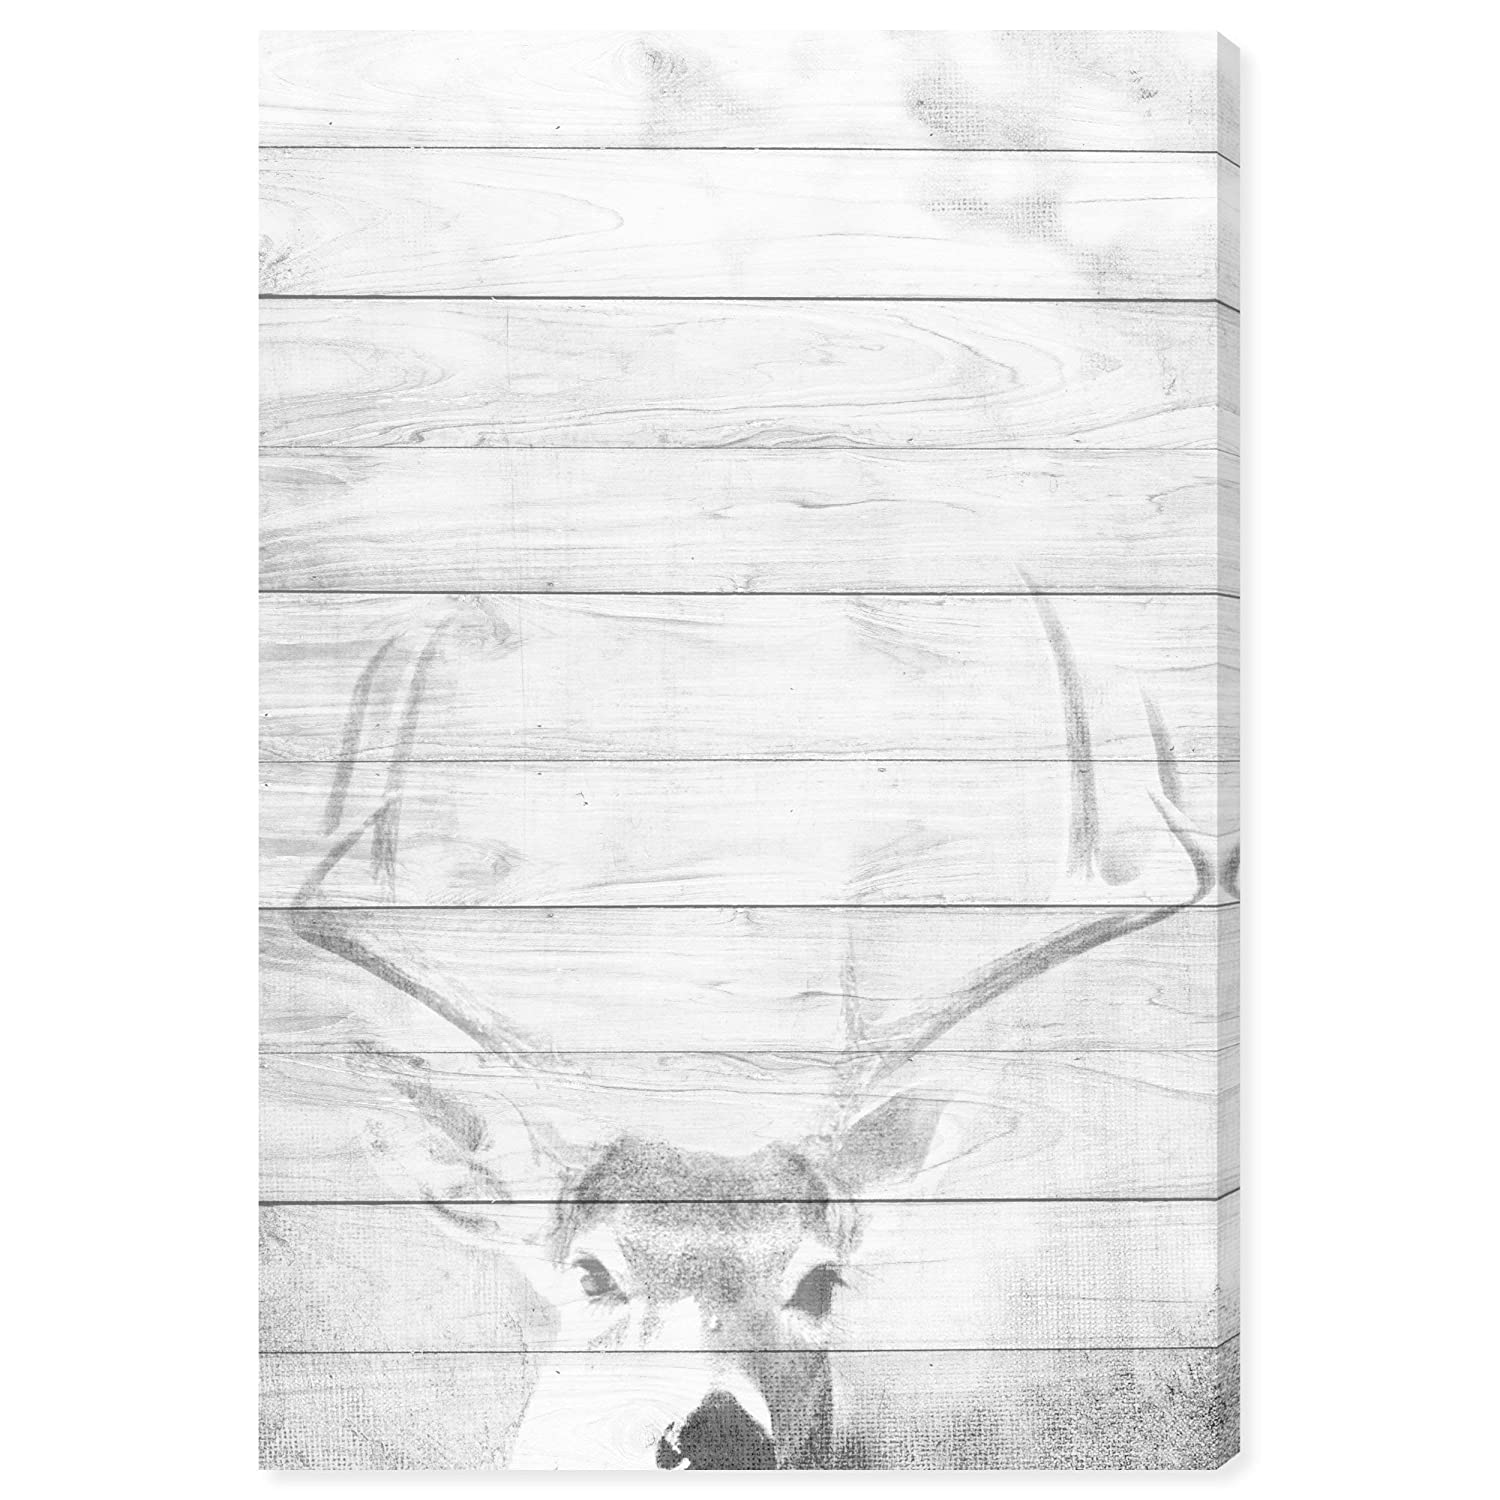 Amazon.com: Oliver Gal Deer in The Winter Canvas Art 30x45: Posters & Prints